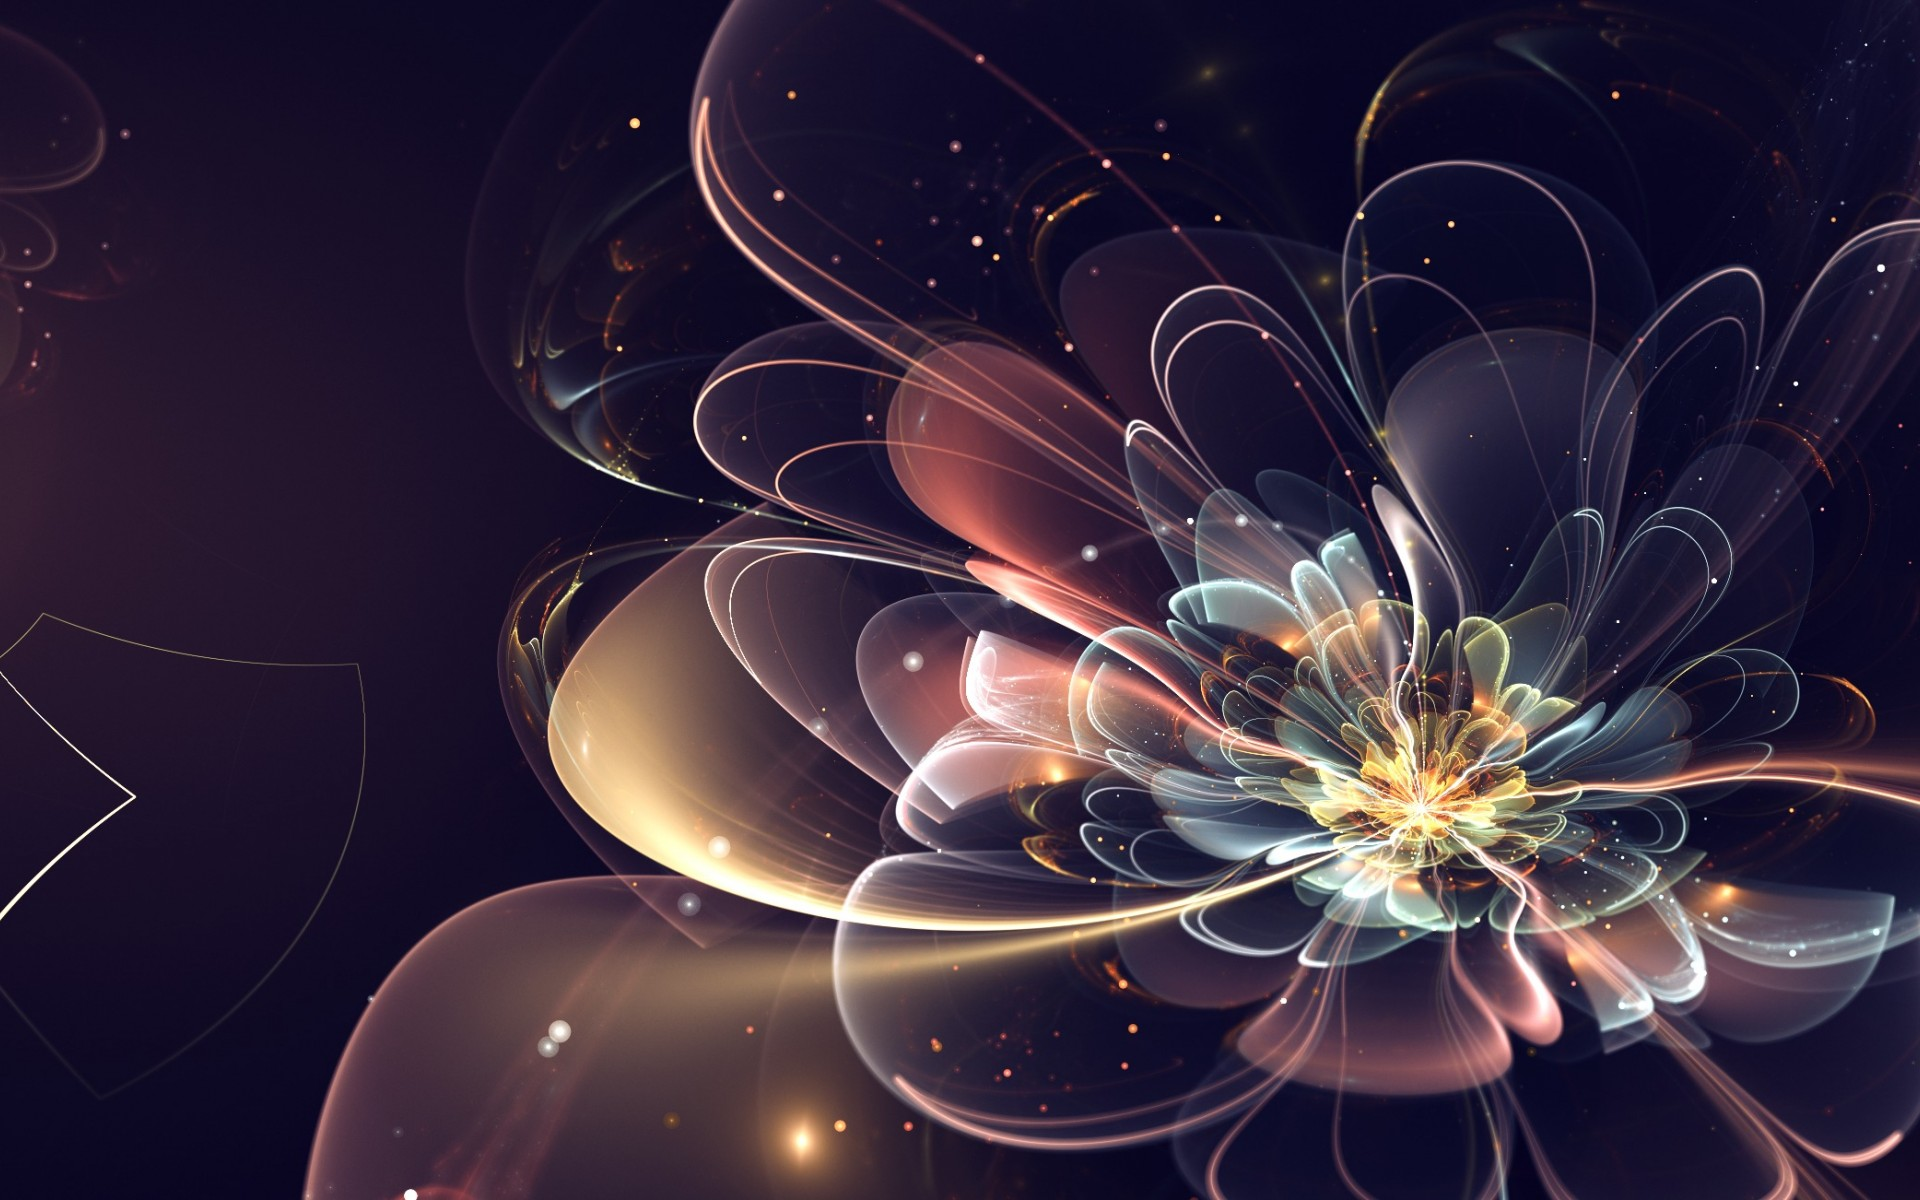 Download Wallpaper x d Abstract Fractal Bright New | wallpapers ...